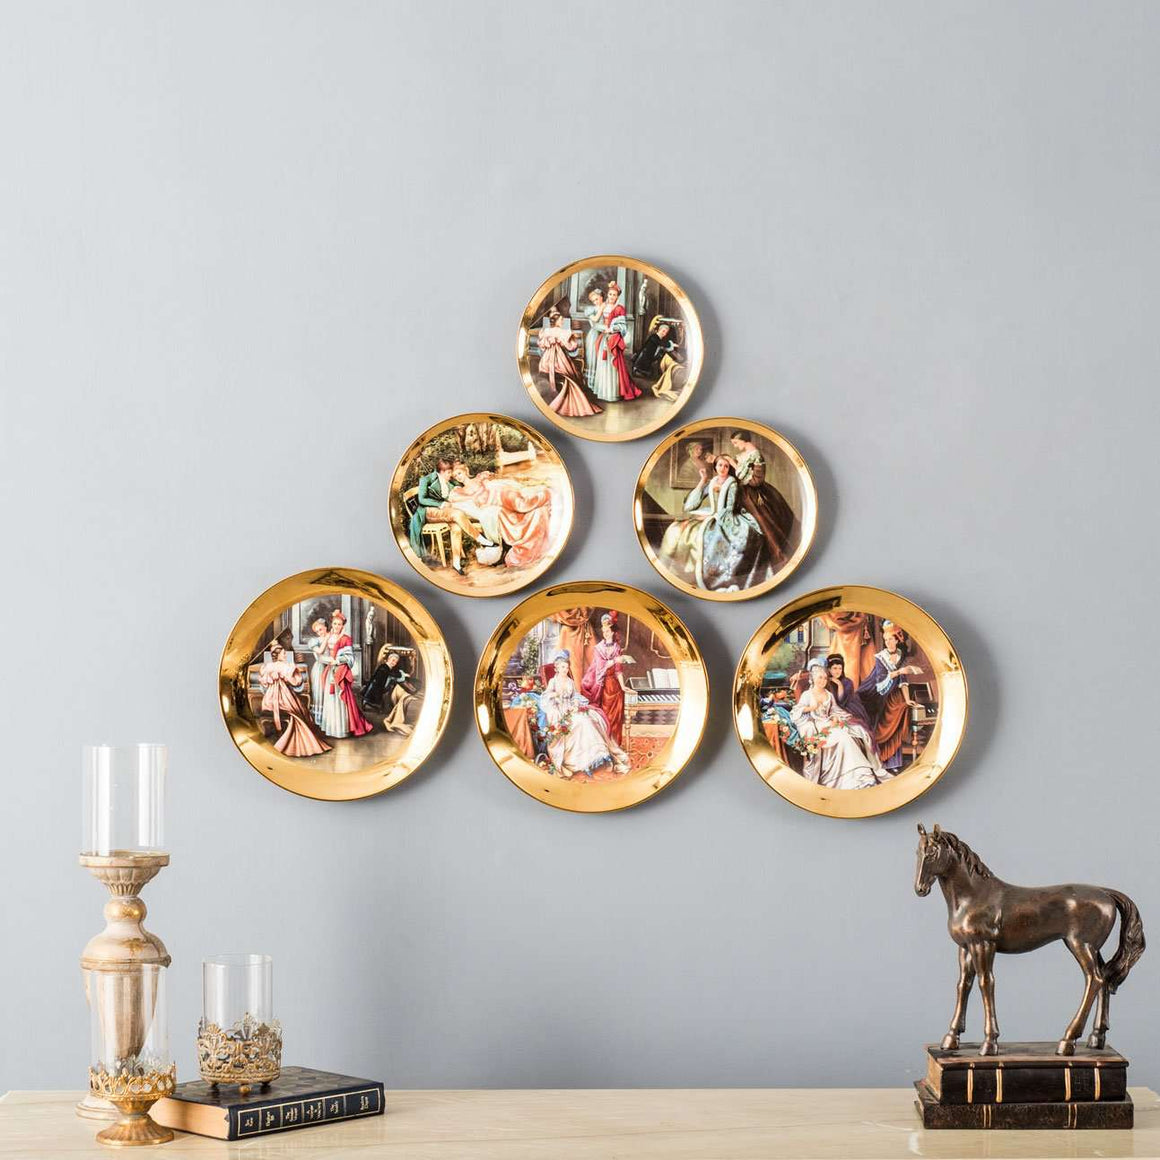 Classic Victorian Gold Plate Collage - Set of 6